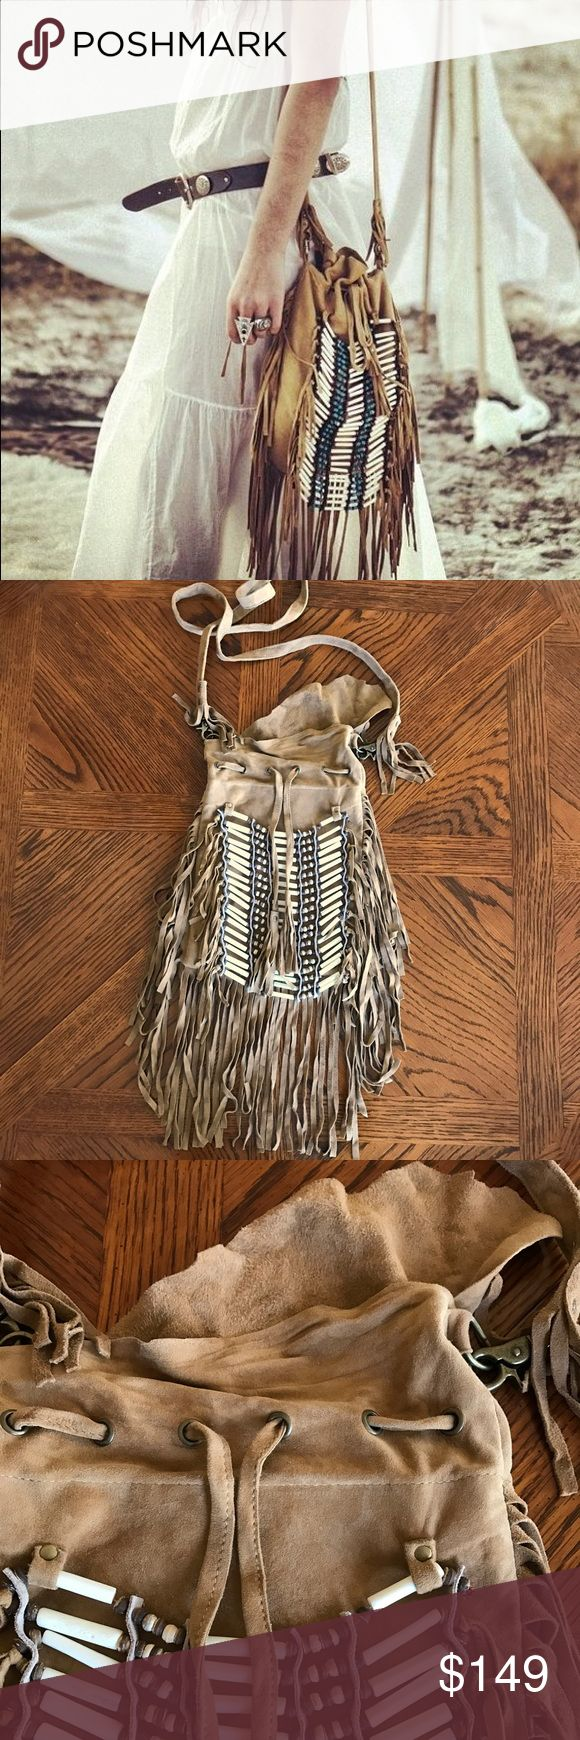 """New Free People Spell And Gypsy Dreamweaver Bag Leather crossbody bag with leather fringe trimming and drawstring closure at top. Tiered bead embellishment on the front. Long leather strap. Leather is super soft and supple. Inside is lined with one pocket.  Please note the bag's right hinge will not open so the strap can not be removed. Please see photos.  NWOT. This bag was purchased at the manufacturer's outlet center.  The bag's body measures approximately 8"""" by 11"""" not including the…"""